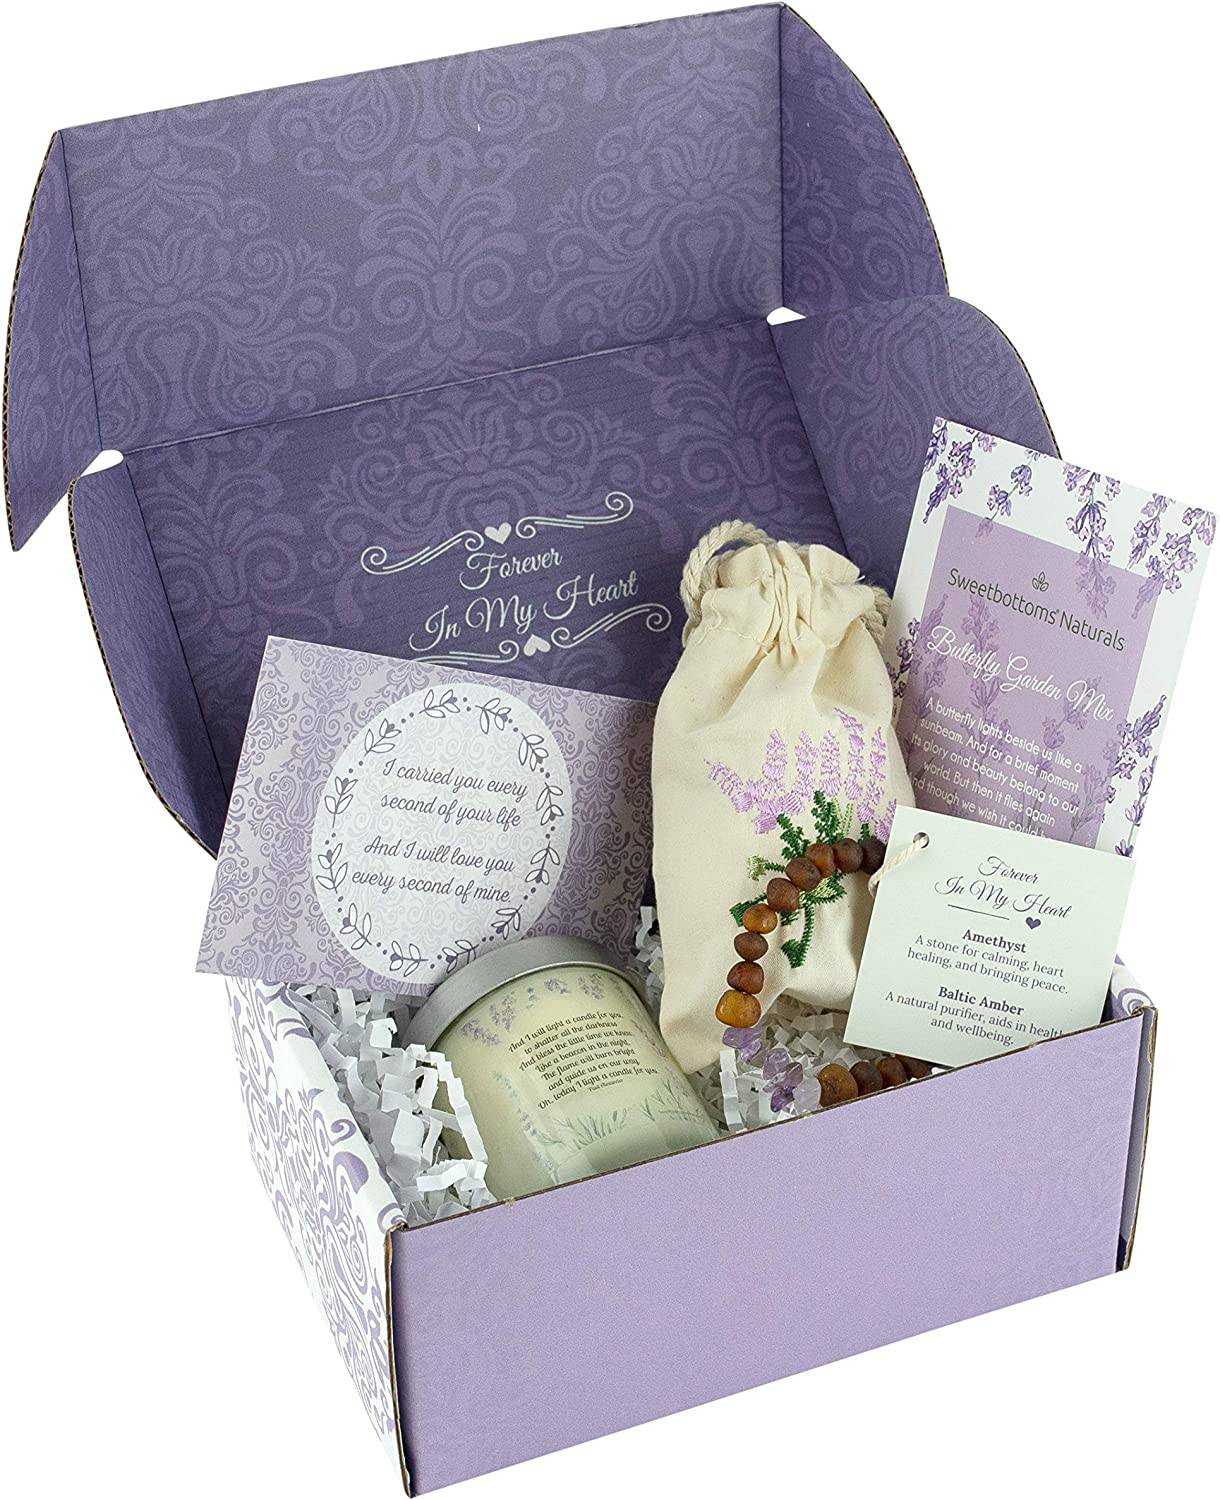 """Unique Memorial Gift for Loss of a Loved One - Express Your Sympathy 4-Piece Gift Set with Mini Candle, Remembrance Jewelry, Flower Seeds, Card & Gift Box - Uplifting """"In Loving Memory"""" Gift"""